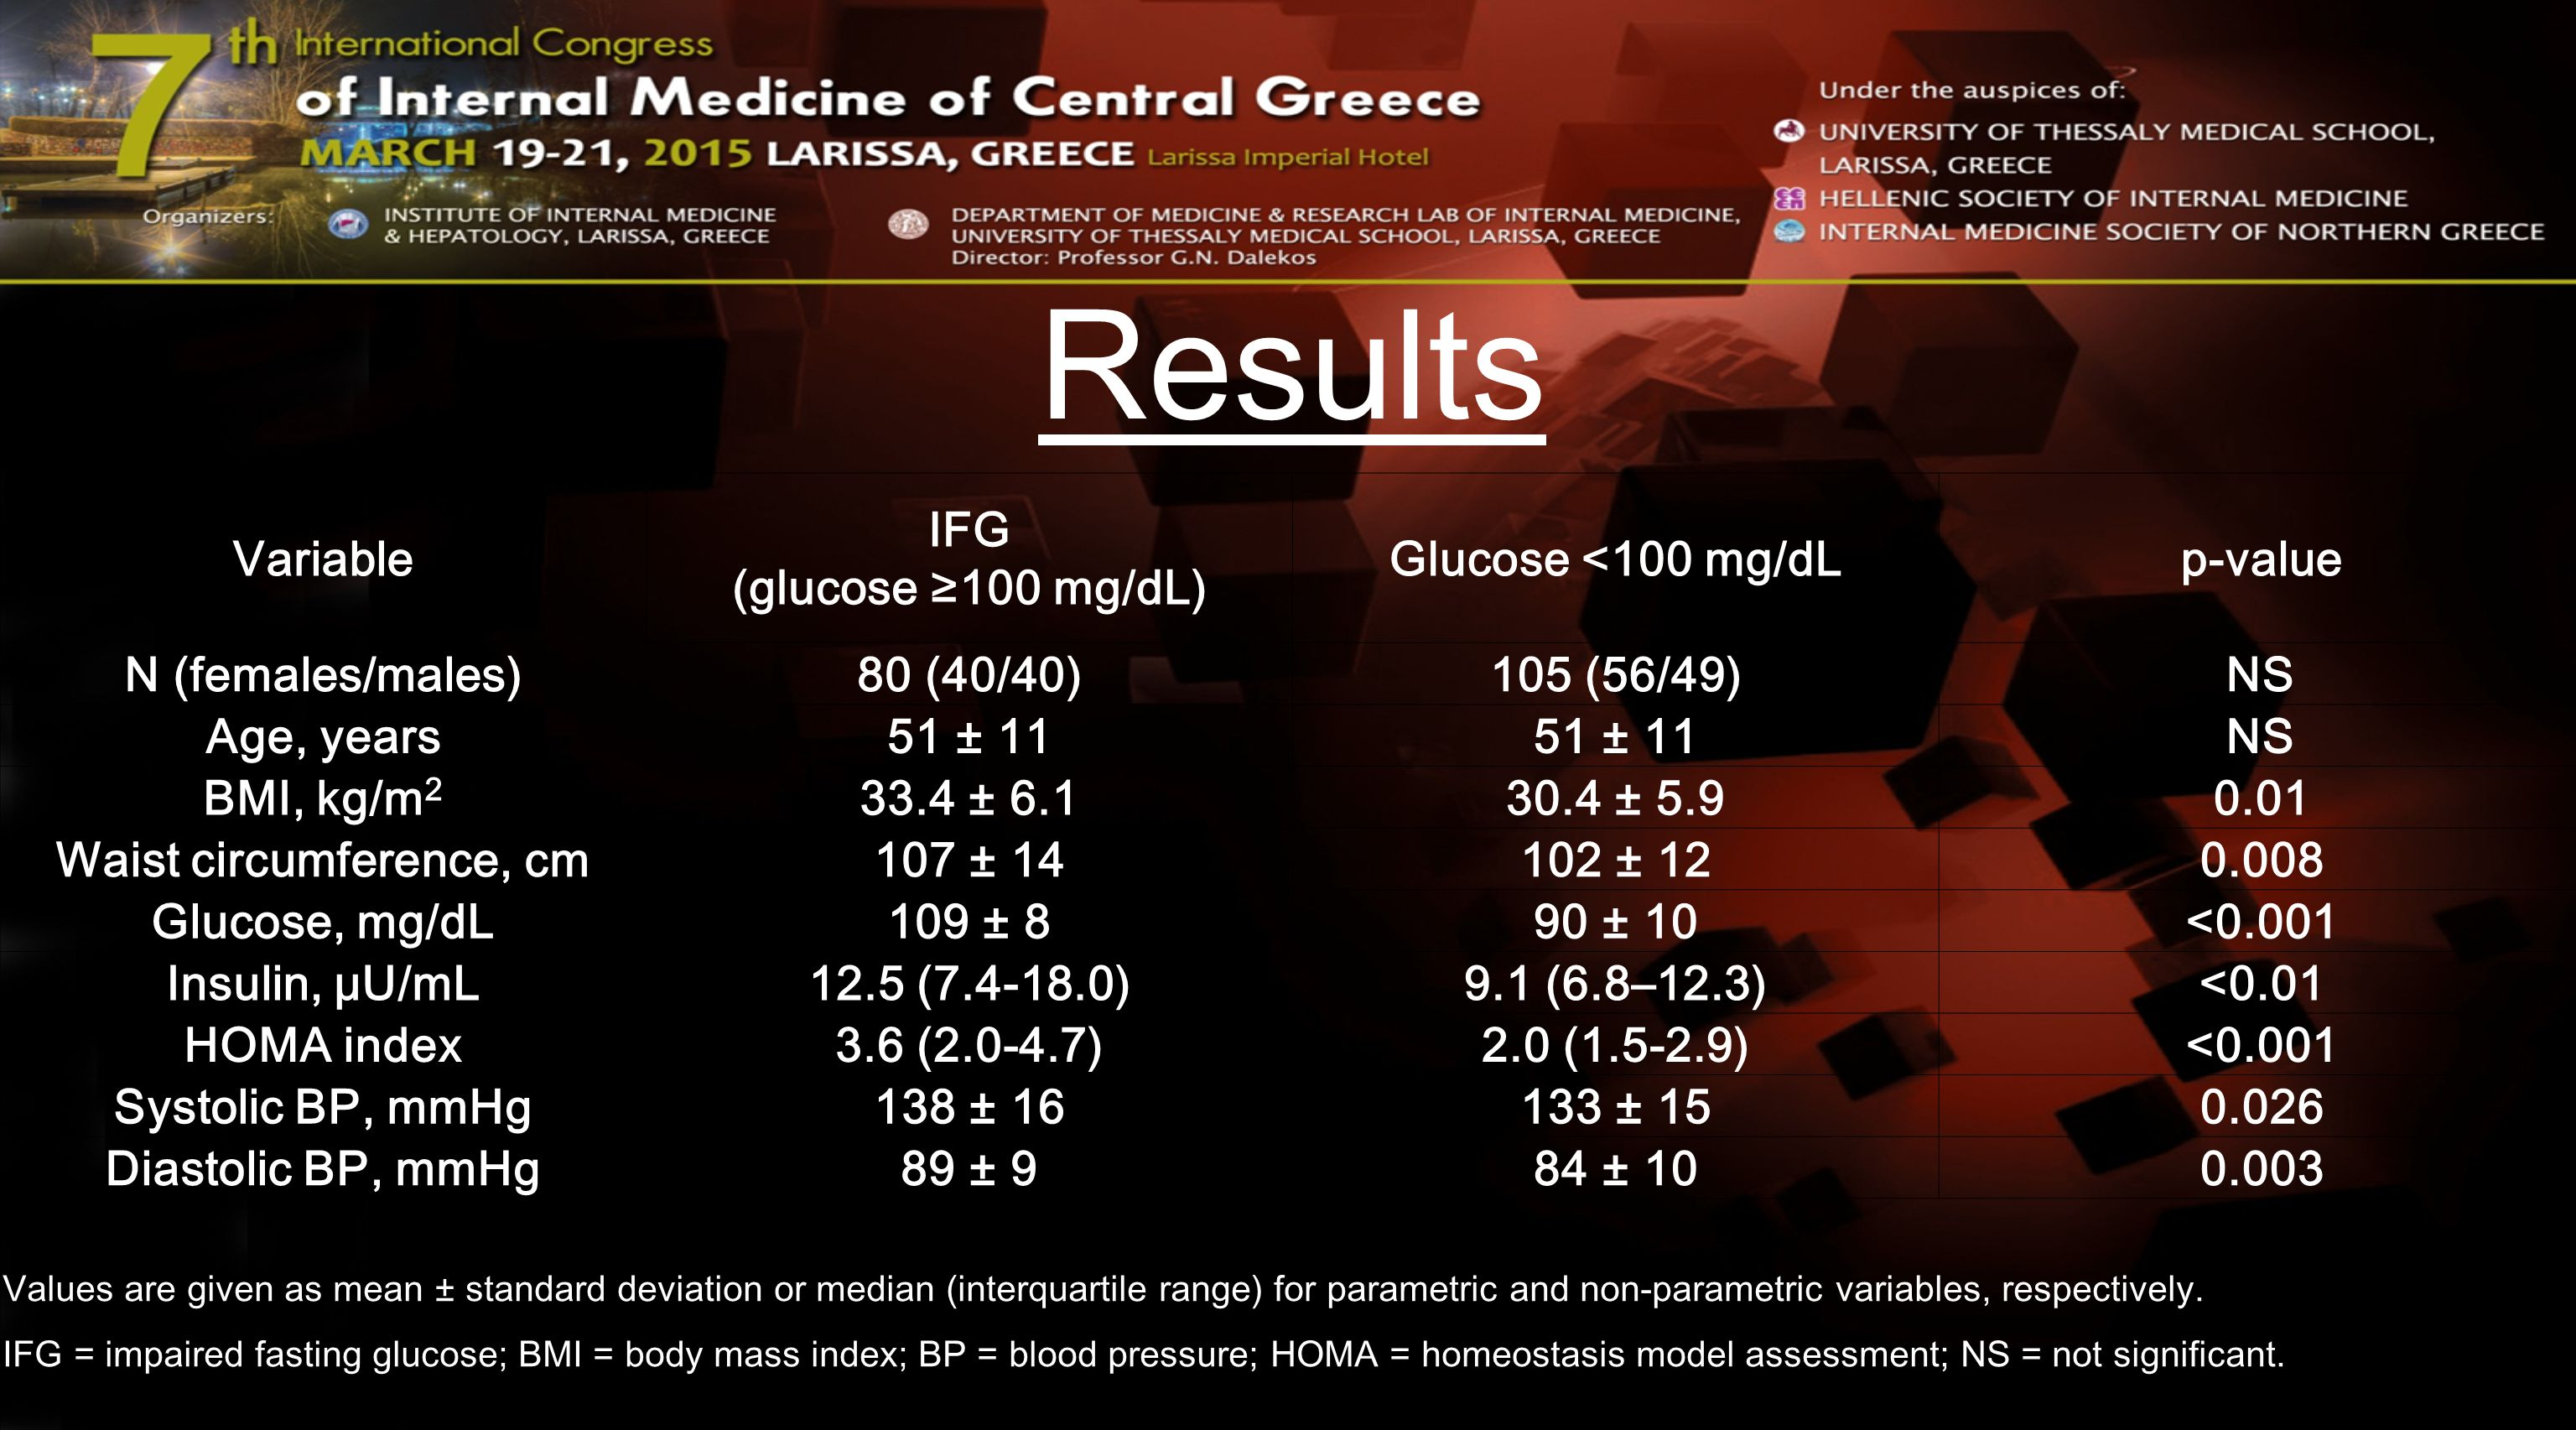 Results (II) Variable Prediabetes (glucose ≥100 mg/dL) Glucose <100 mg/dLp-value Total cholesterol, mg/dL231 ± 32228 ± 39NS Triglycerides, mg/dL160 (109-230)127 (92-179)0.02 HDL-C, mg/dL50 ± 1153 ± 10NS LDL-C, mg/dL149 ± 25147 ± 32NS apoA-I, mg/dL137 ± 25141 ± 22NS apoB, mg/dL108 ± 23109 ± 25NS apoE, mg/dL43 ± 2241 ± 14NS Lp(a), mg/dL10.3 (5.4-14.8)10.5 (5.5-18.5)NS apoC-II (mg/dL)5.3 (4.4-6.3)5.6 (4-6.5)NS apoC-III (mg/dL)12.5 (10.6-15.7)13.9 (10.6-17)NS